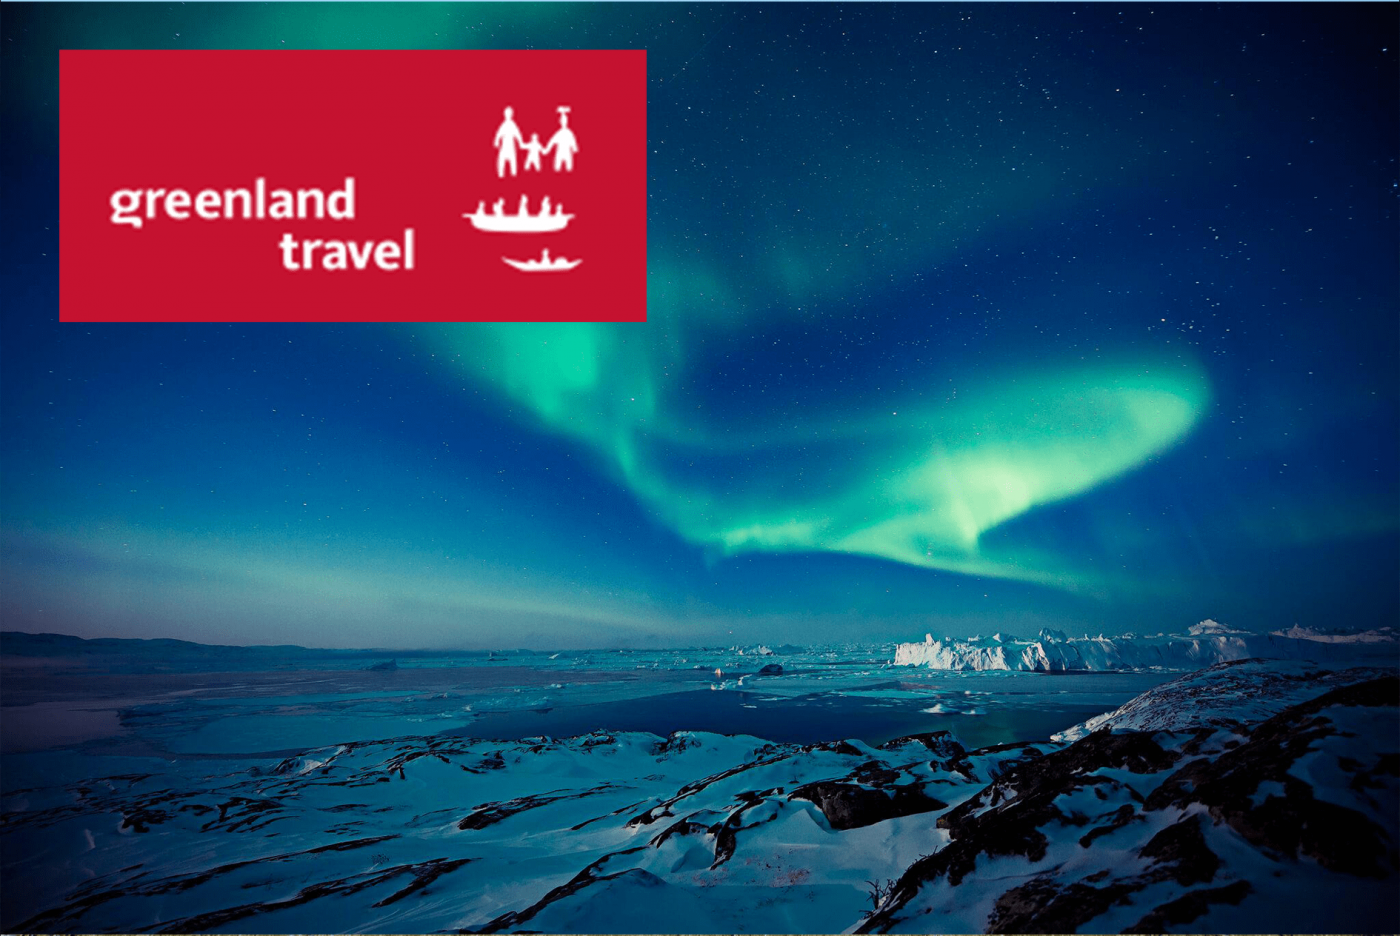 Greenland Travel: Northern Lights on the Starboard Side